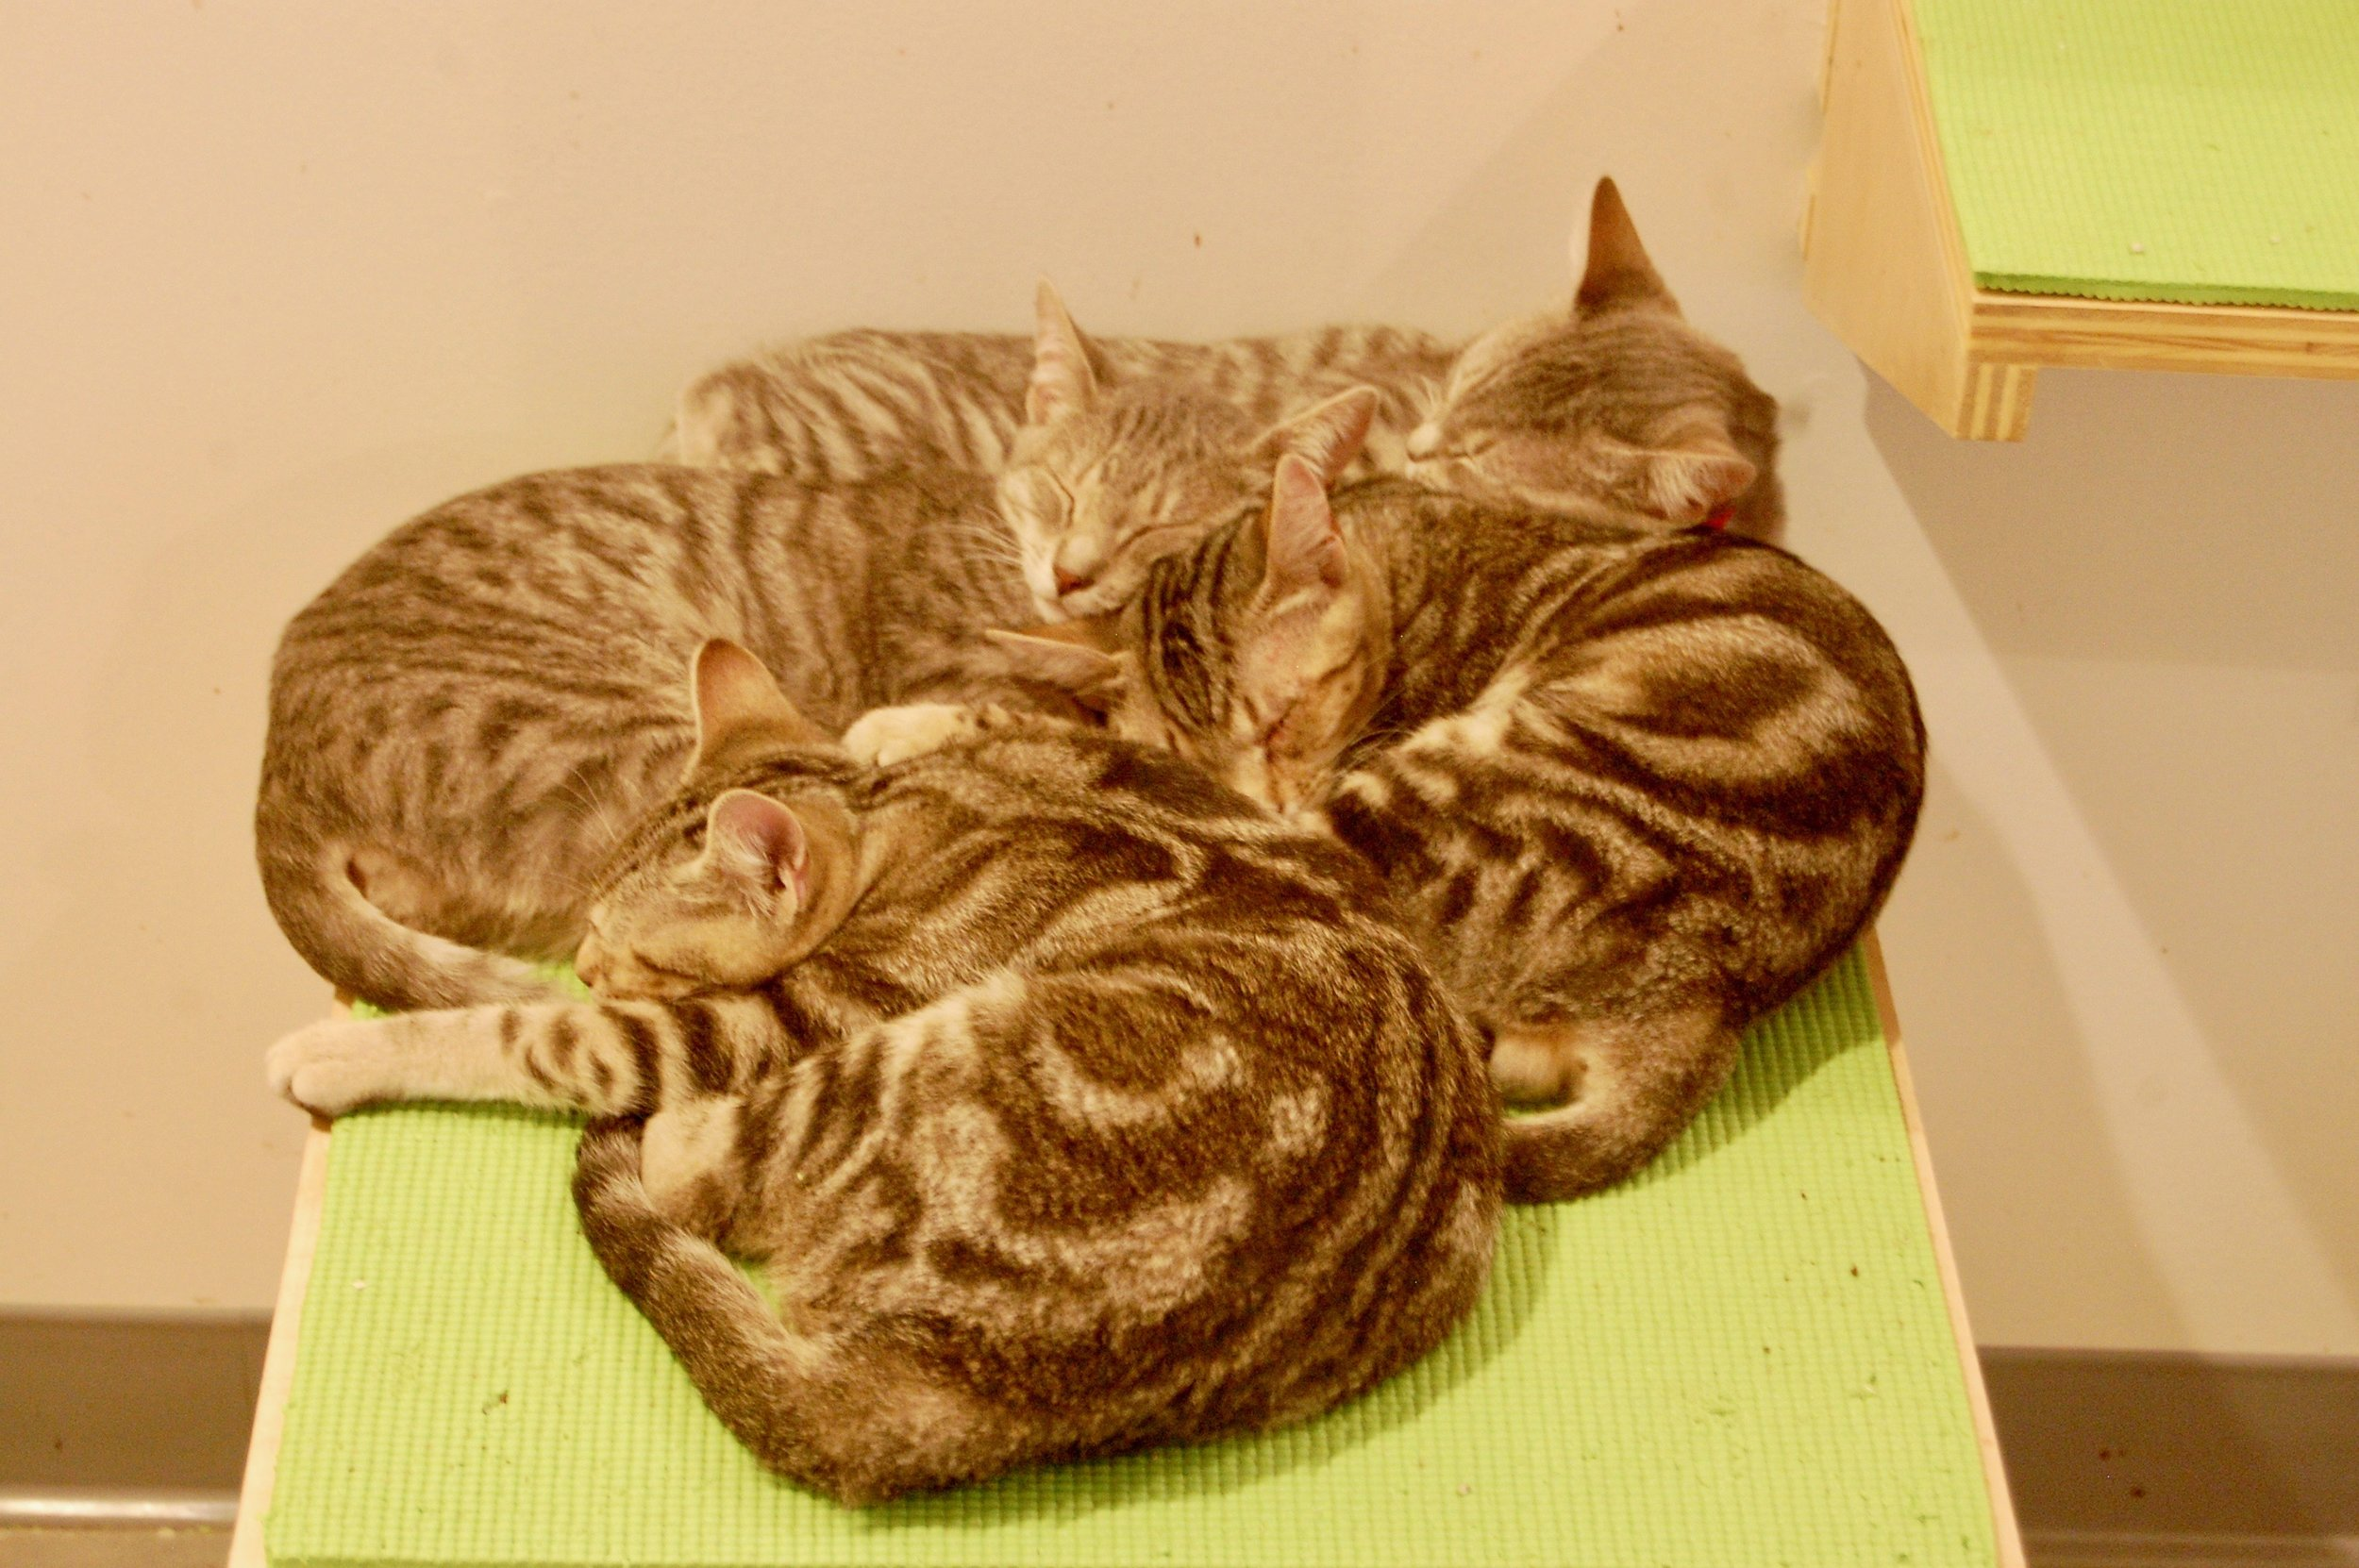 Tabby cuddle puddles are trending at Cat Town! Forgotten Kittens, Kimchi, Bulgogi, Soju, and Mandoo take a rest after playing. Photo by Cathy Niland.